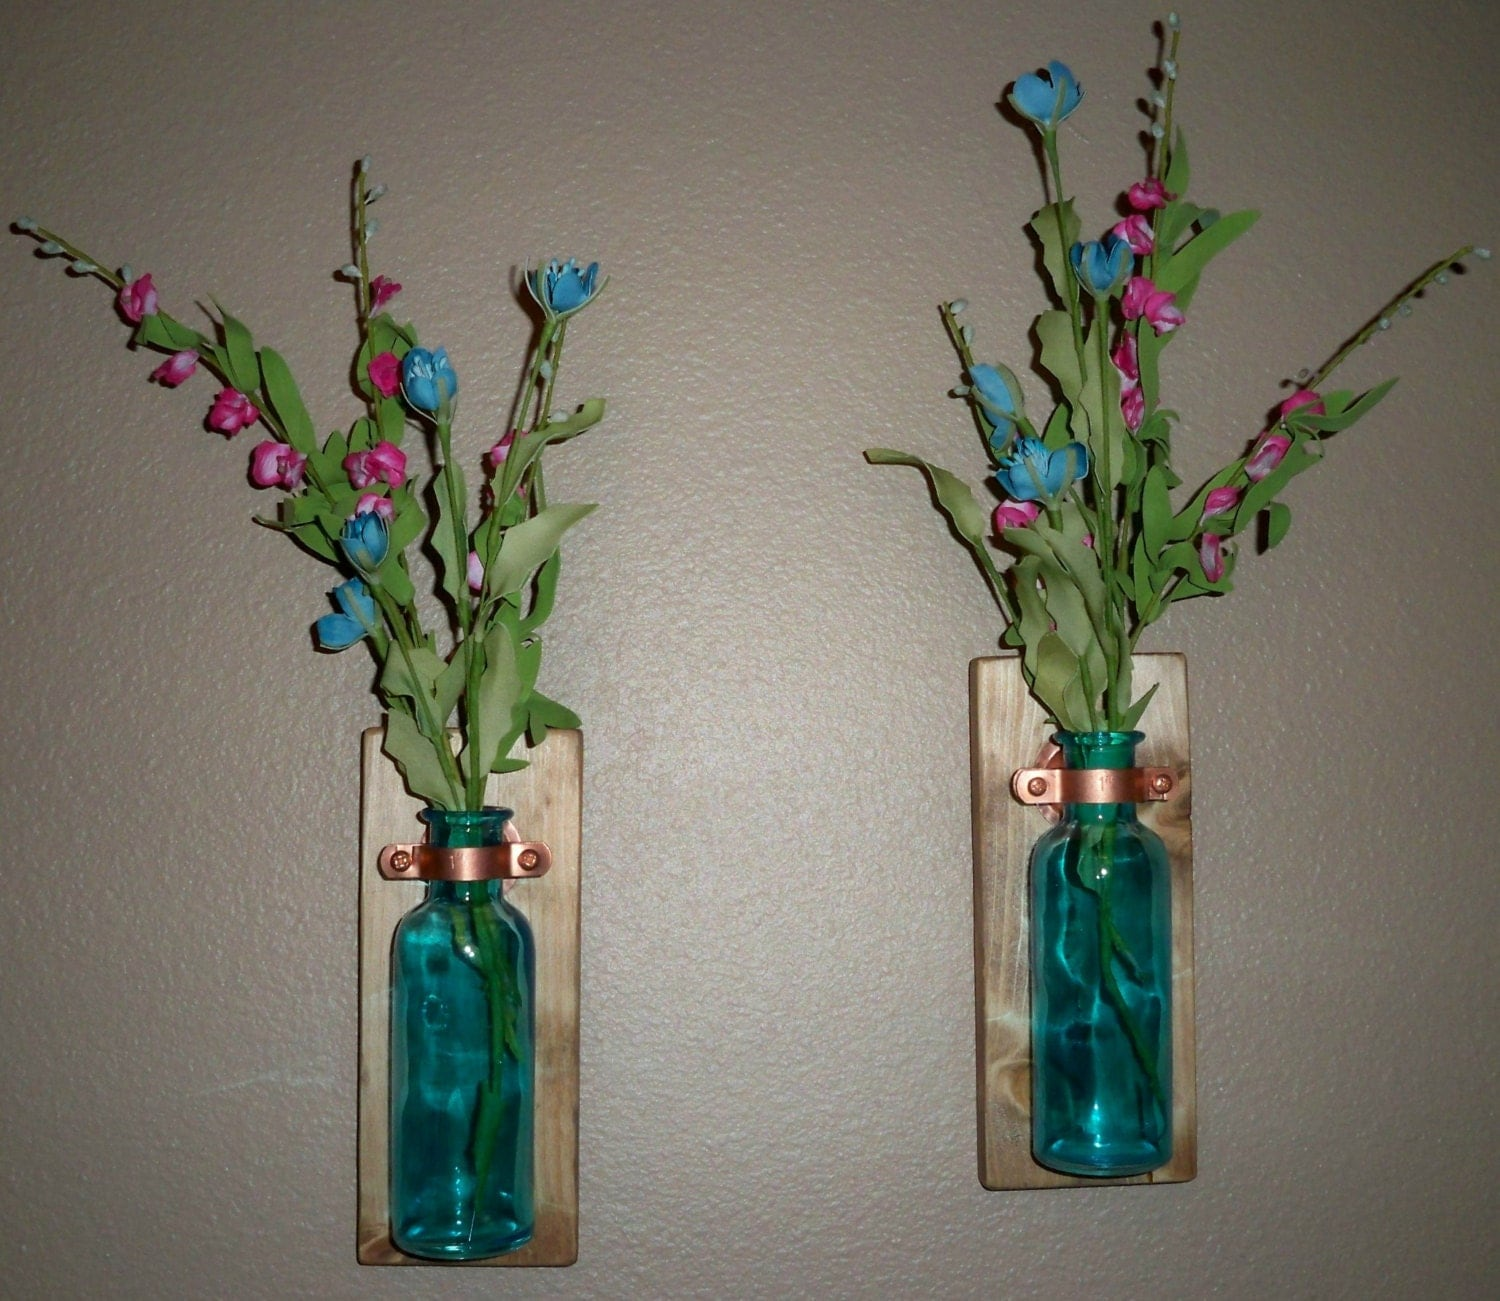 Colored Glass Wall Decor : Colored glass bottle rustic wall decor kitchen